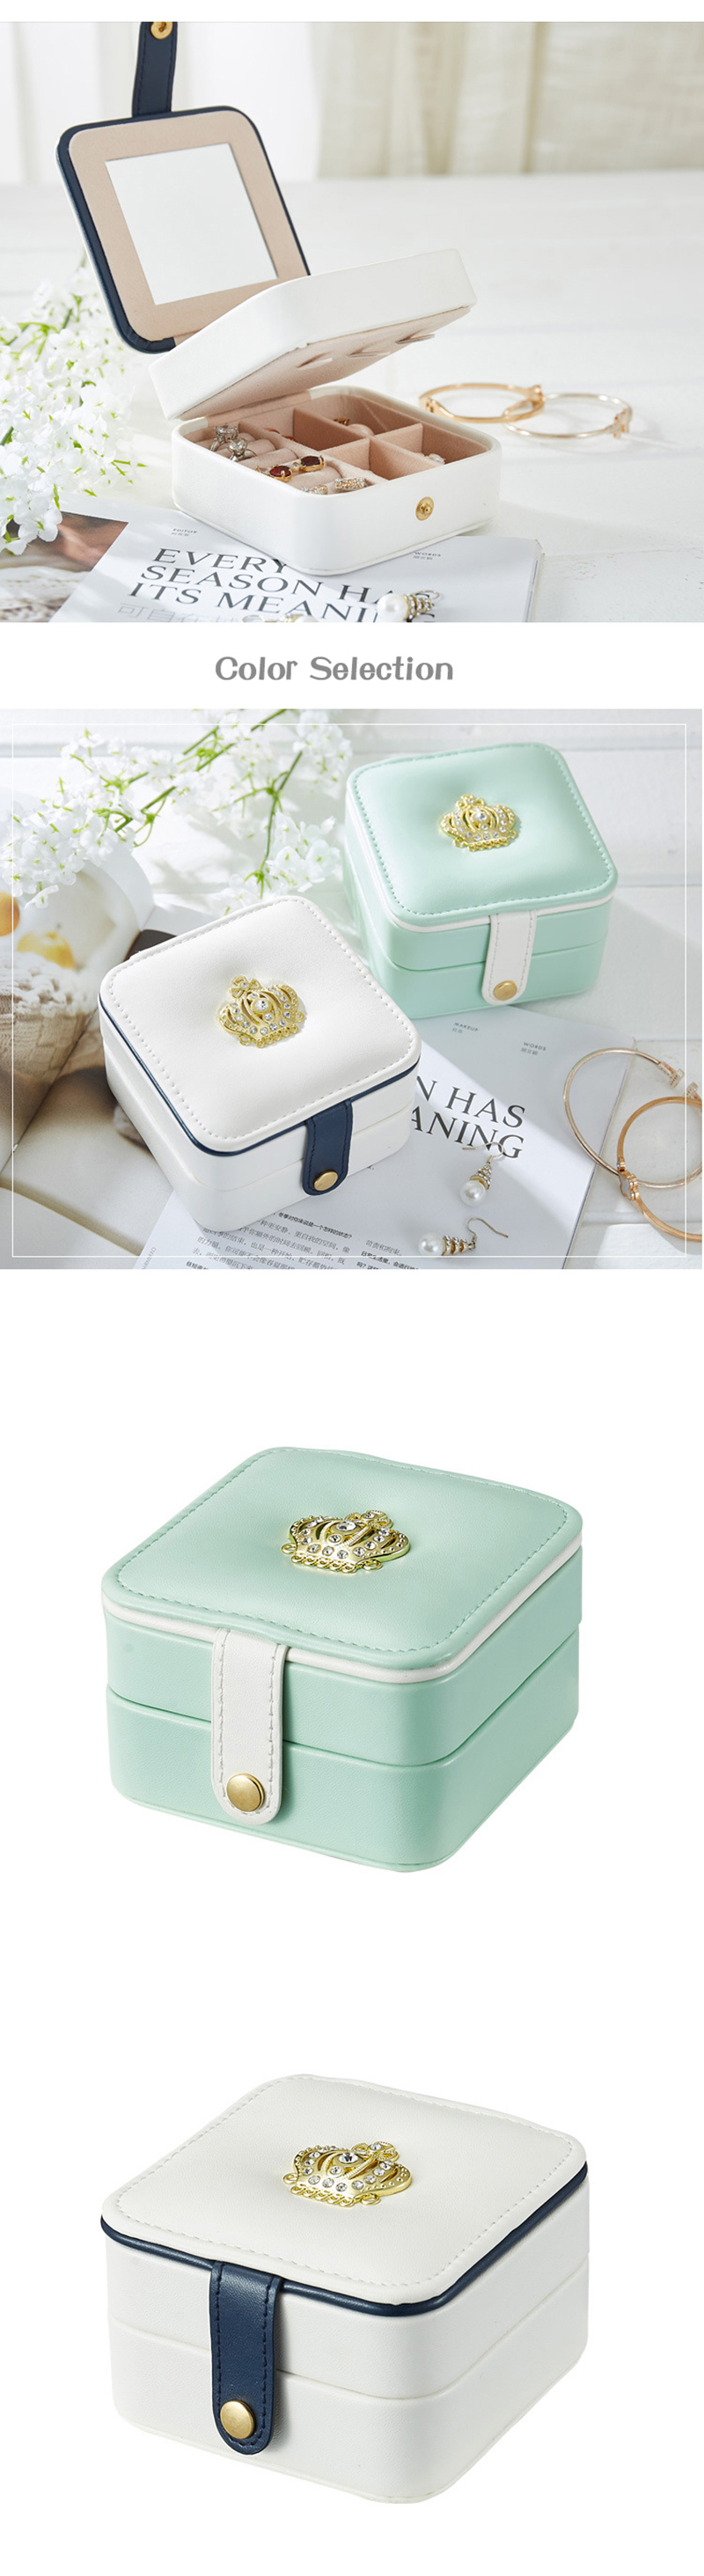 35dceb36652c 2 Color Crown Mini Travel Accessories Case Jewelry Storage Casket Leather  Ring Earring Organizer Box Wedding Birthday Gift Bag